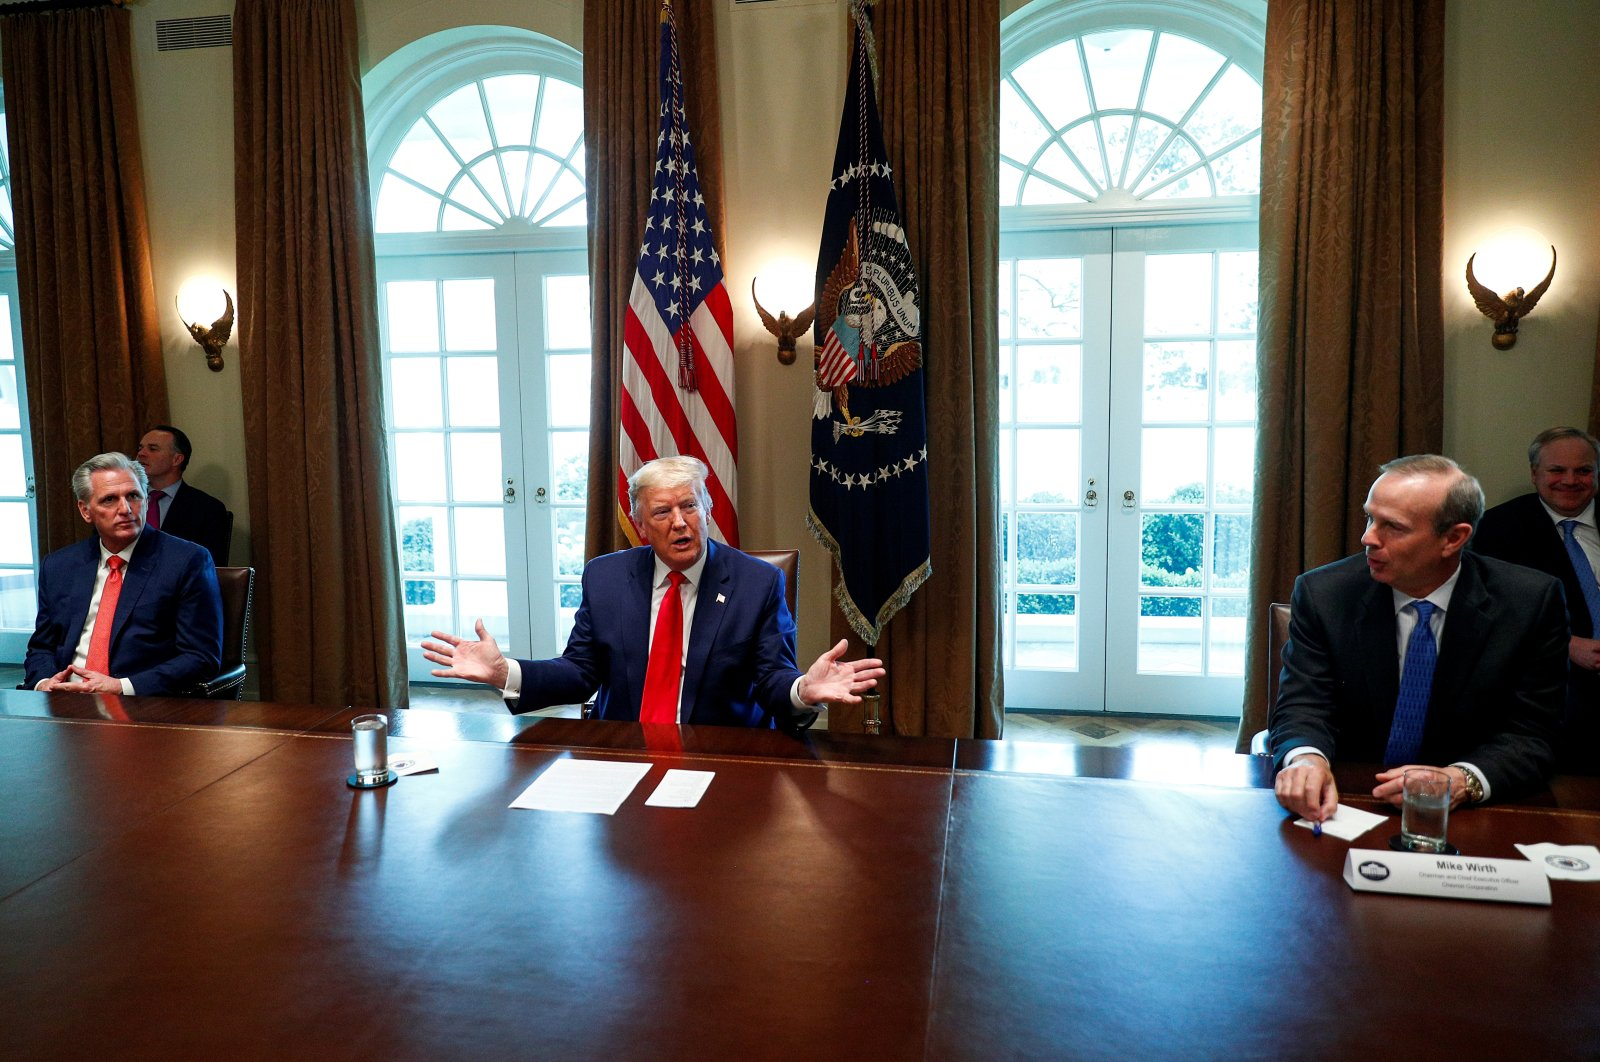 U.S. President Donald Trump speaks during a roundtable with energy sector CEOs as House Minority Leader Kevin McCarthy (R-CA) and Chevron CEO Mike Wirth listen in the Cabinet Room of the White House in Washington, U.S., April 3, 2020. (Reuters File Photo)